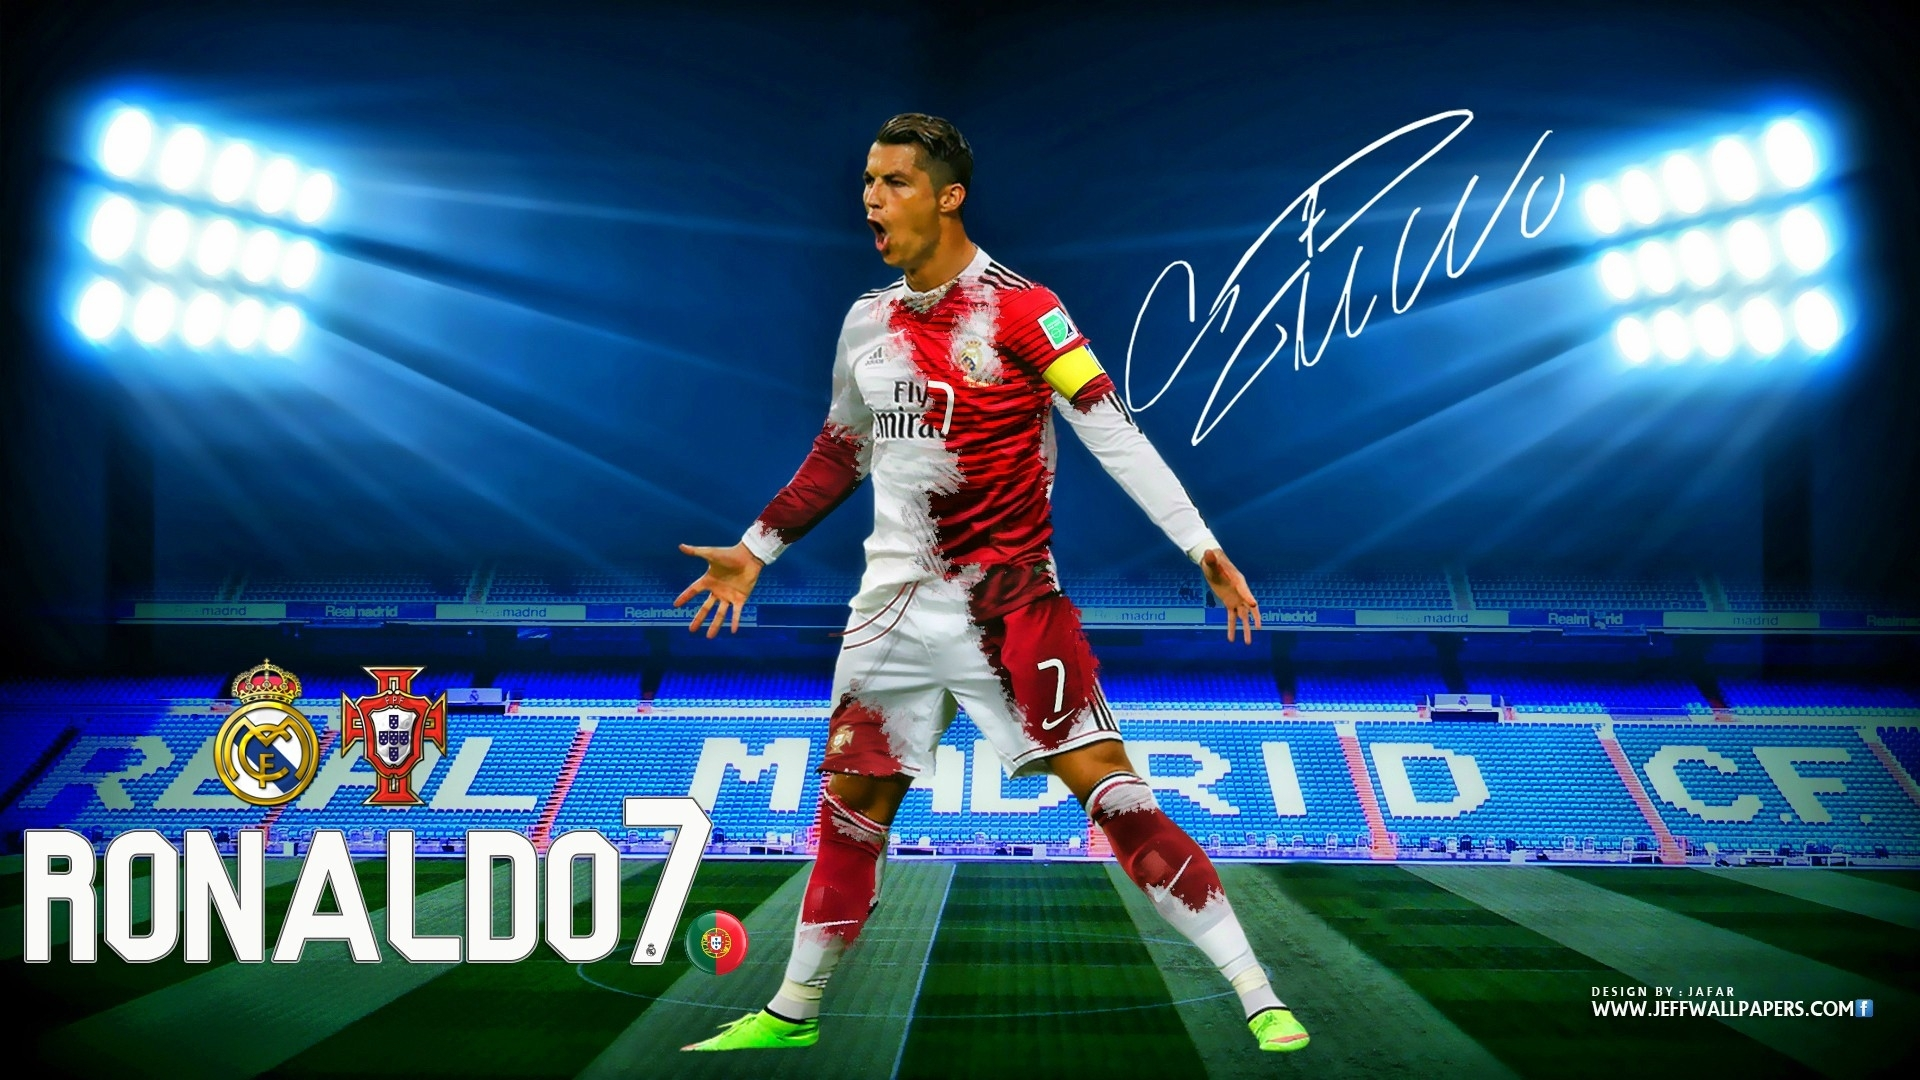 cristiano ronaldo wallpaper 2015 | jeffwallpapers